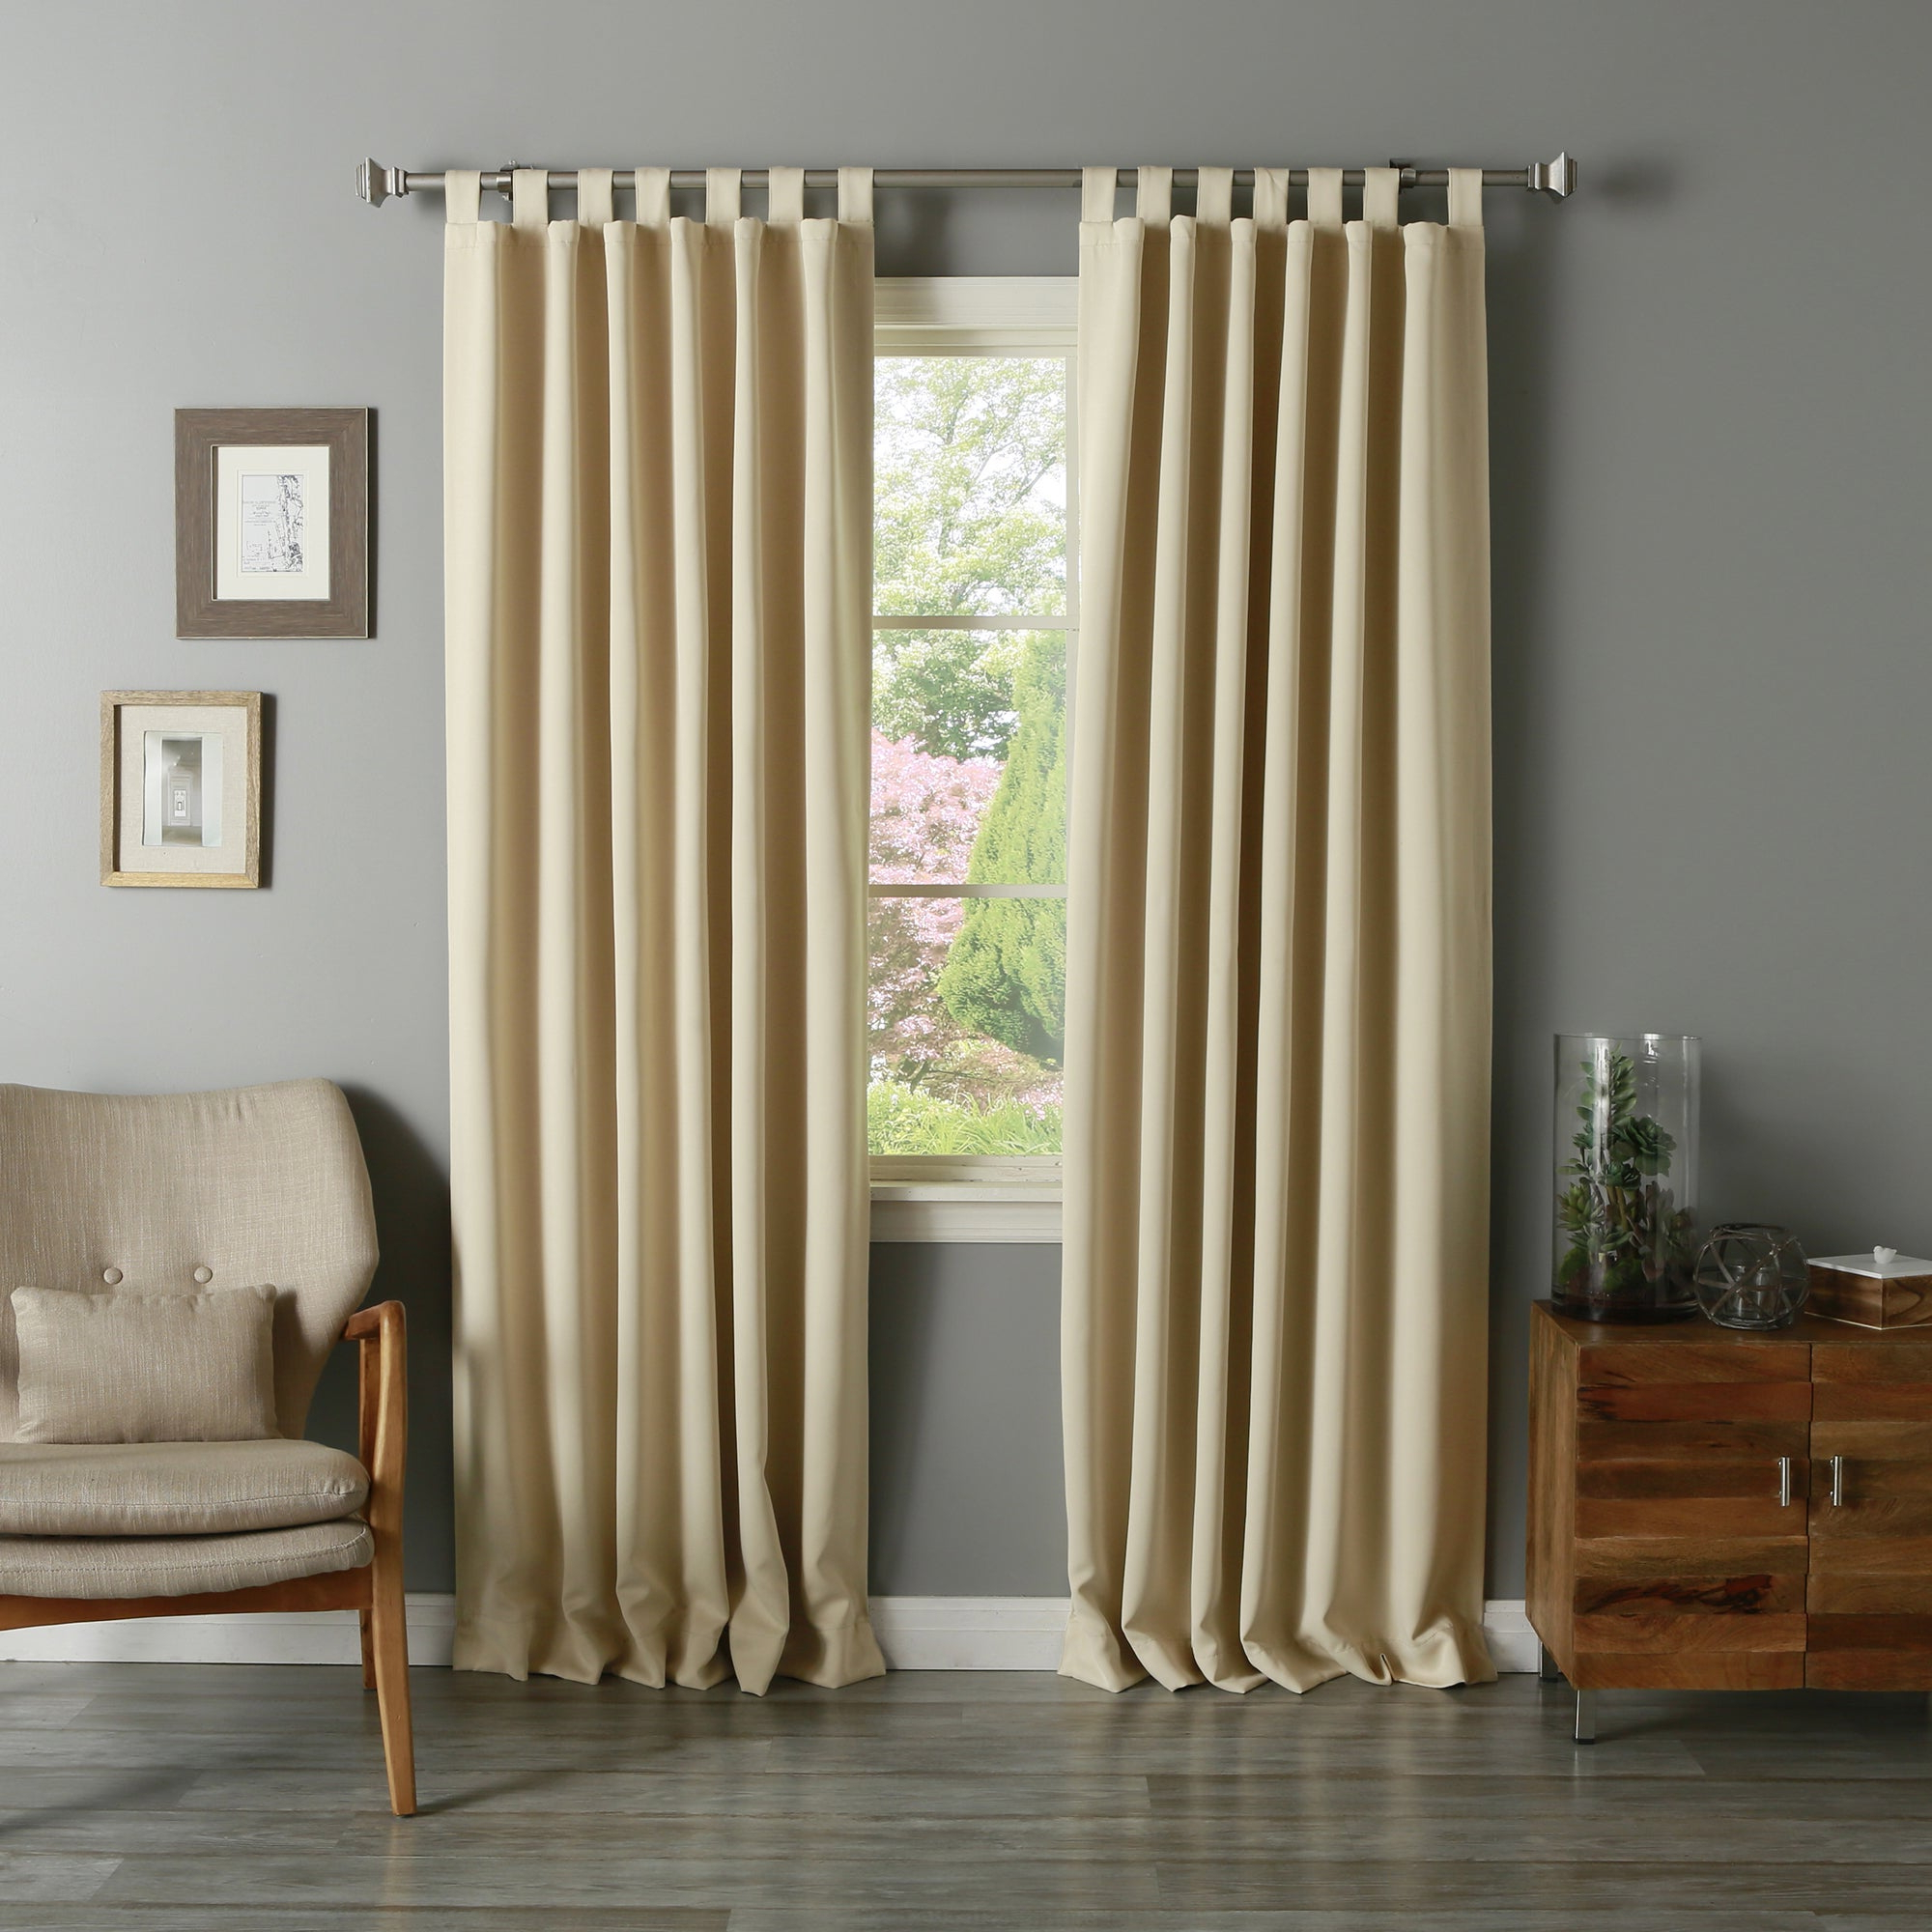 Famous Aurora Home Tab Top Thermal Insulated 95 Inch Blackout Curtain Panel Pair – 52 X 95 With Regard To Thermal Insulated Blackout Curtain Pairs (View 16 of 20)